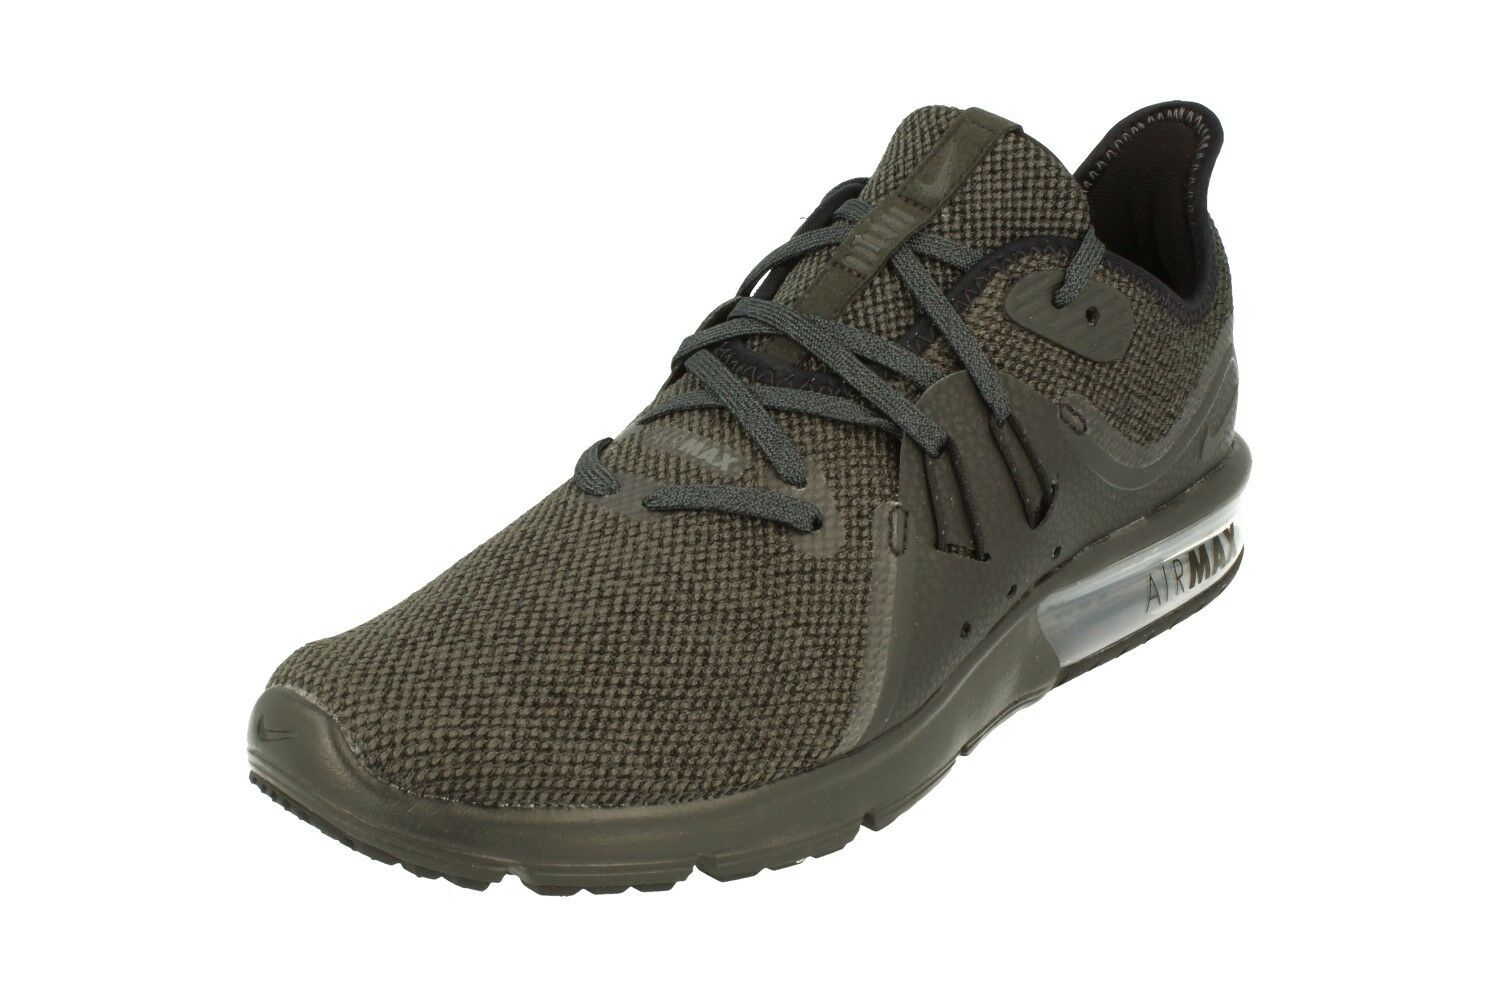 Nike Air Max Sequent 3 Mens Running Trainers 921694 Sneakers shoes 010